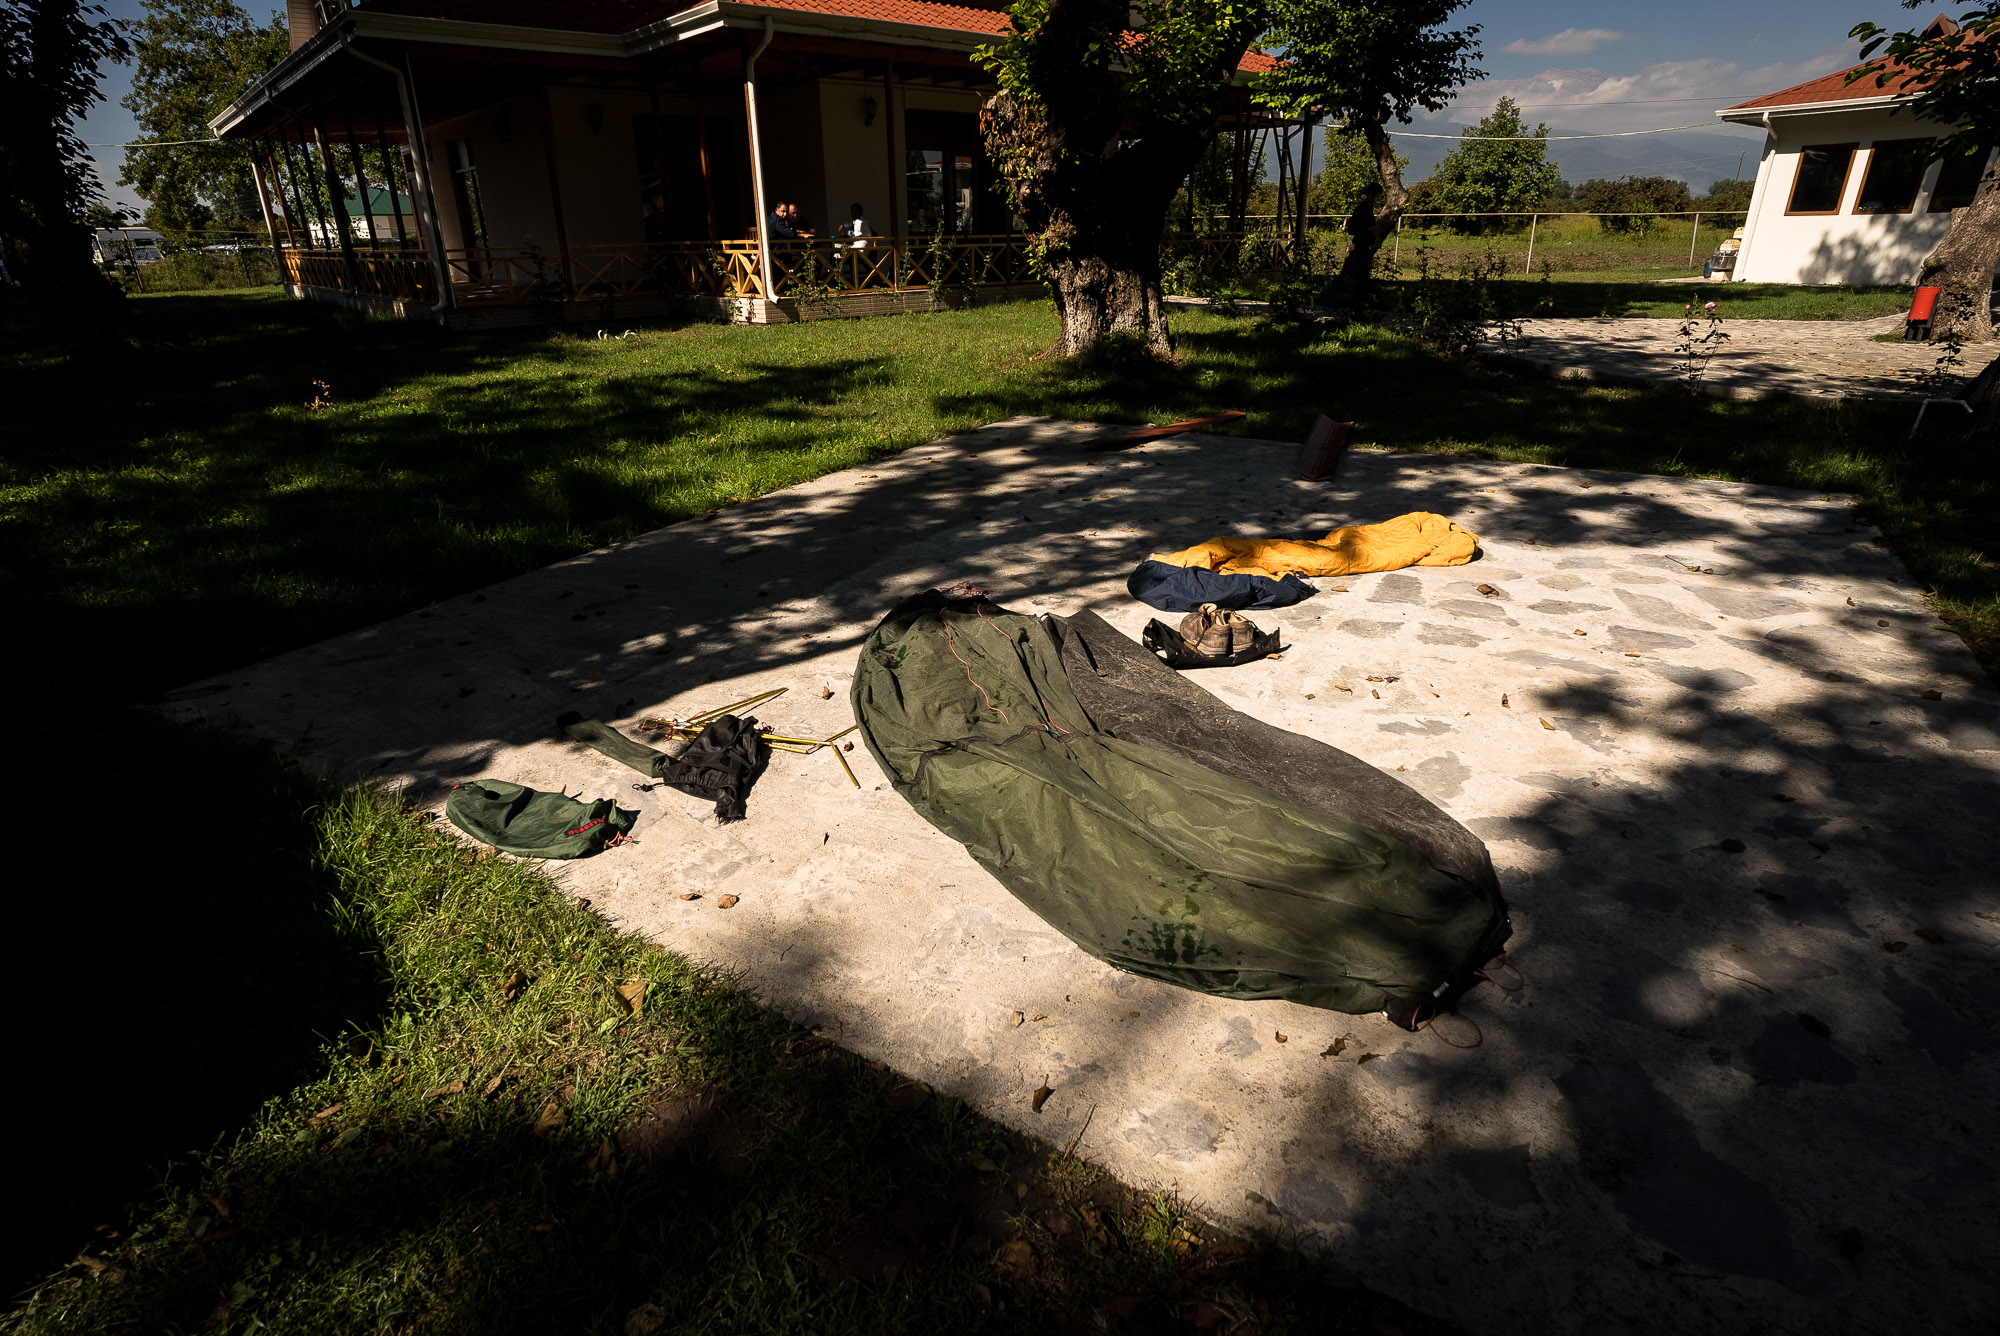 drying the tent